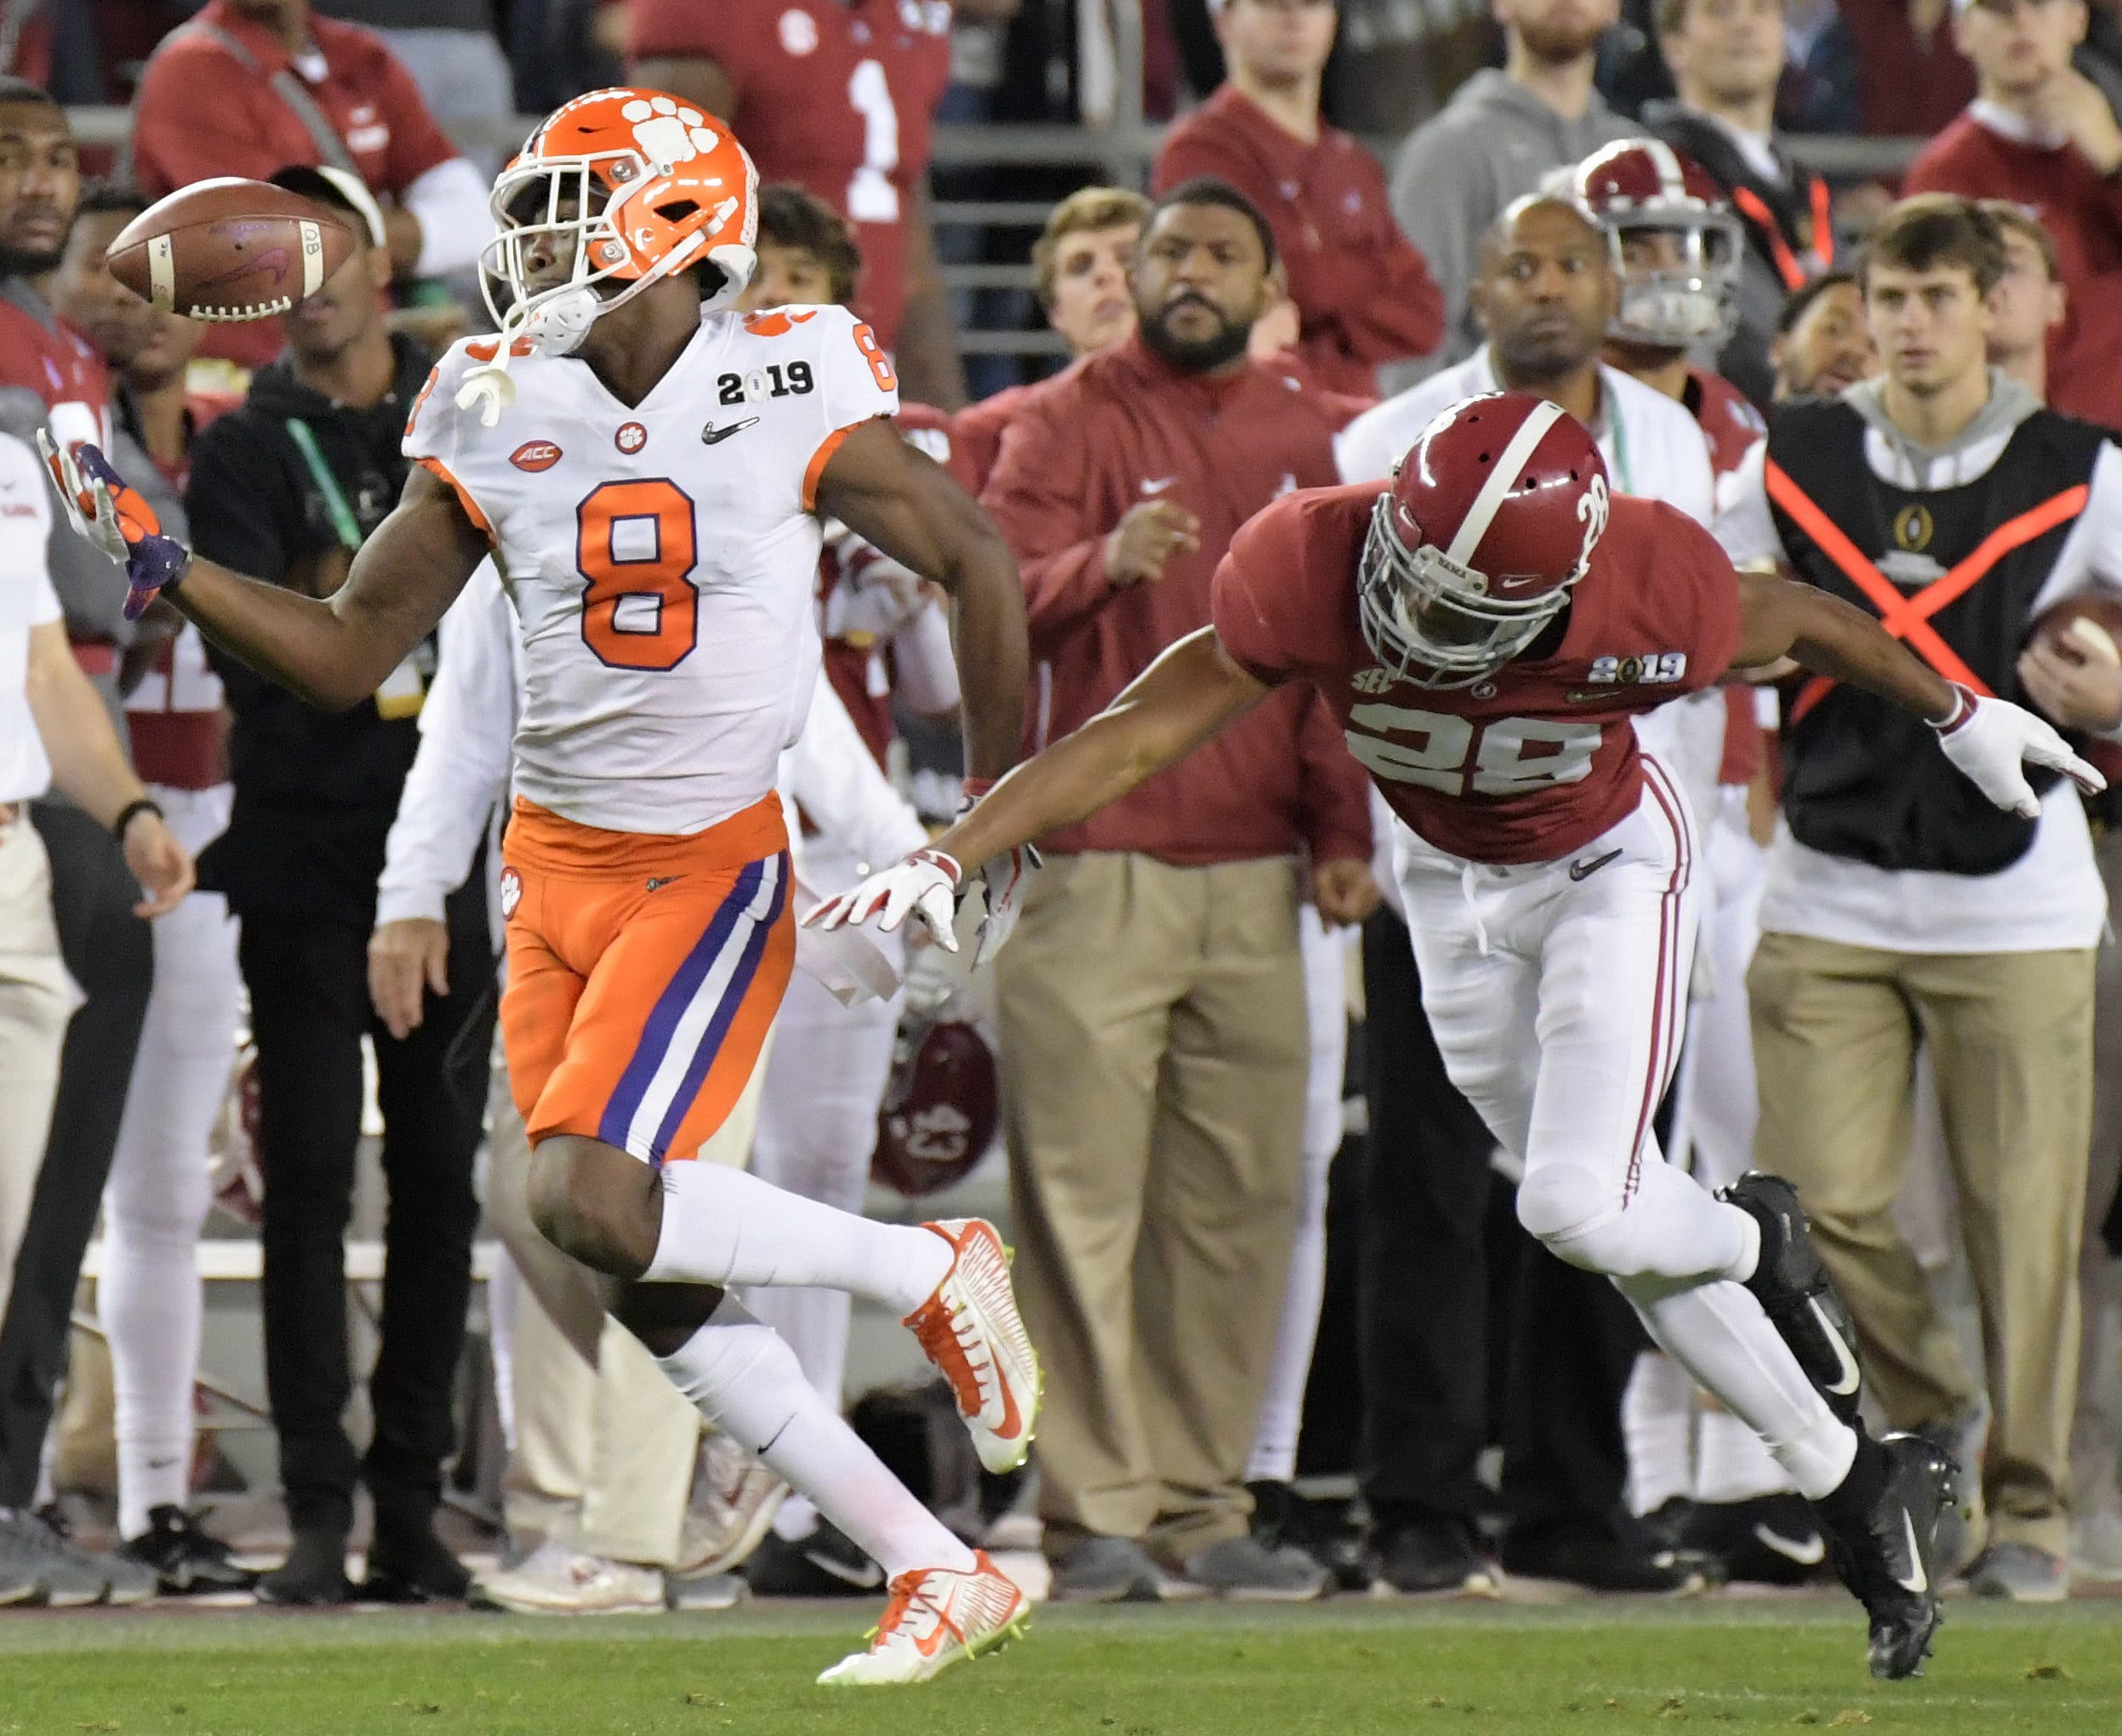 Clemson wide receiver Justyn Ross attempts to make a catch while being defended by Alabama defensive back Josh Jobe during the 2019 College Football Playoff championship game.